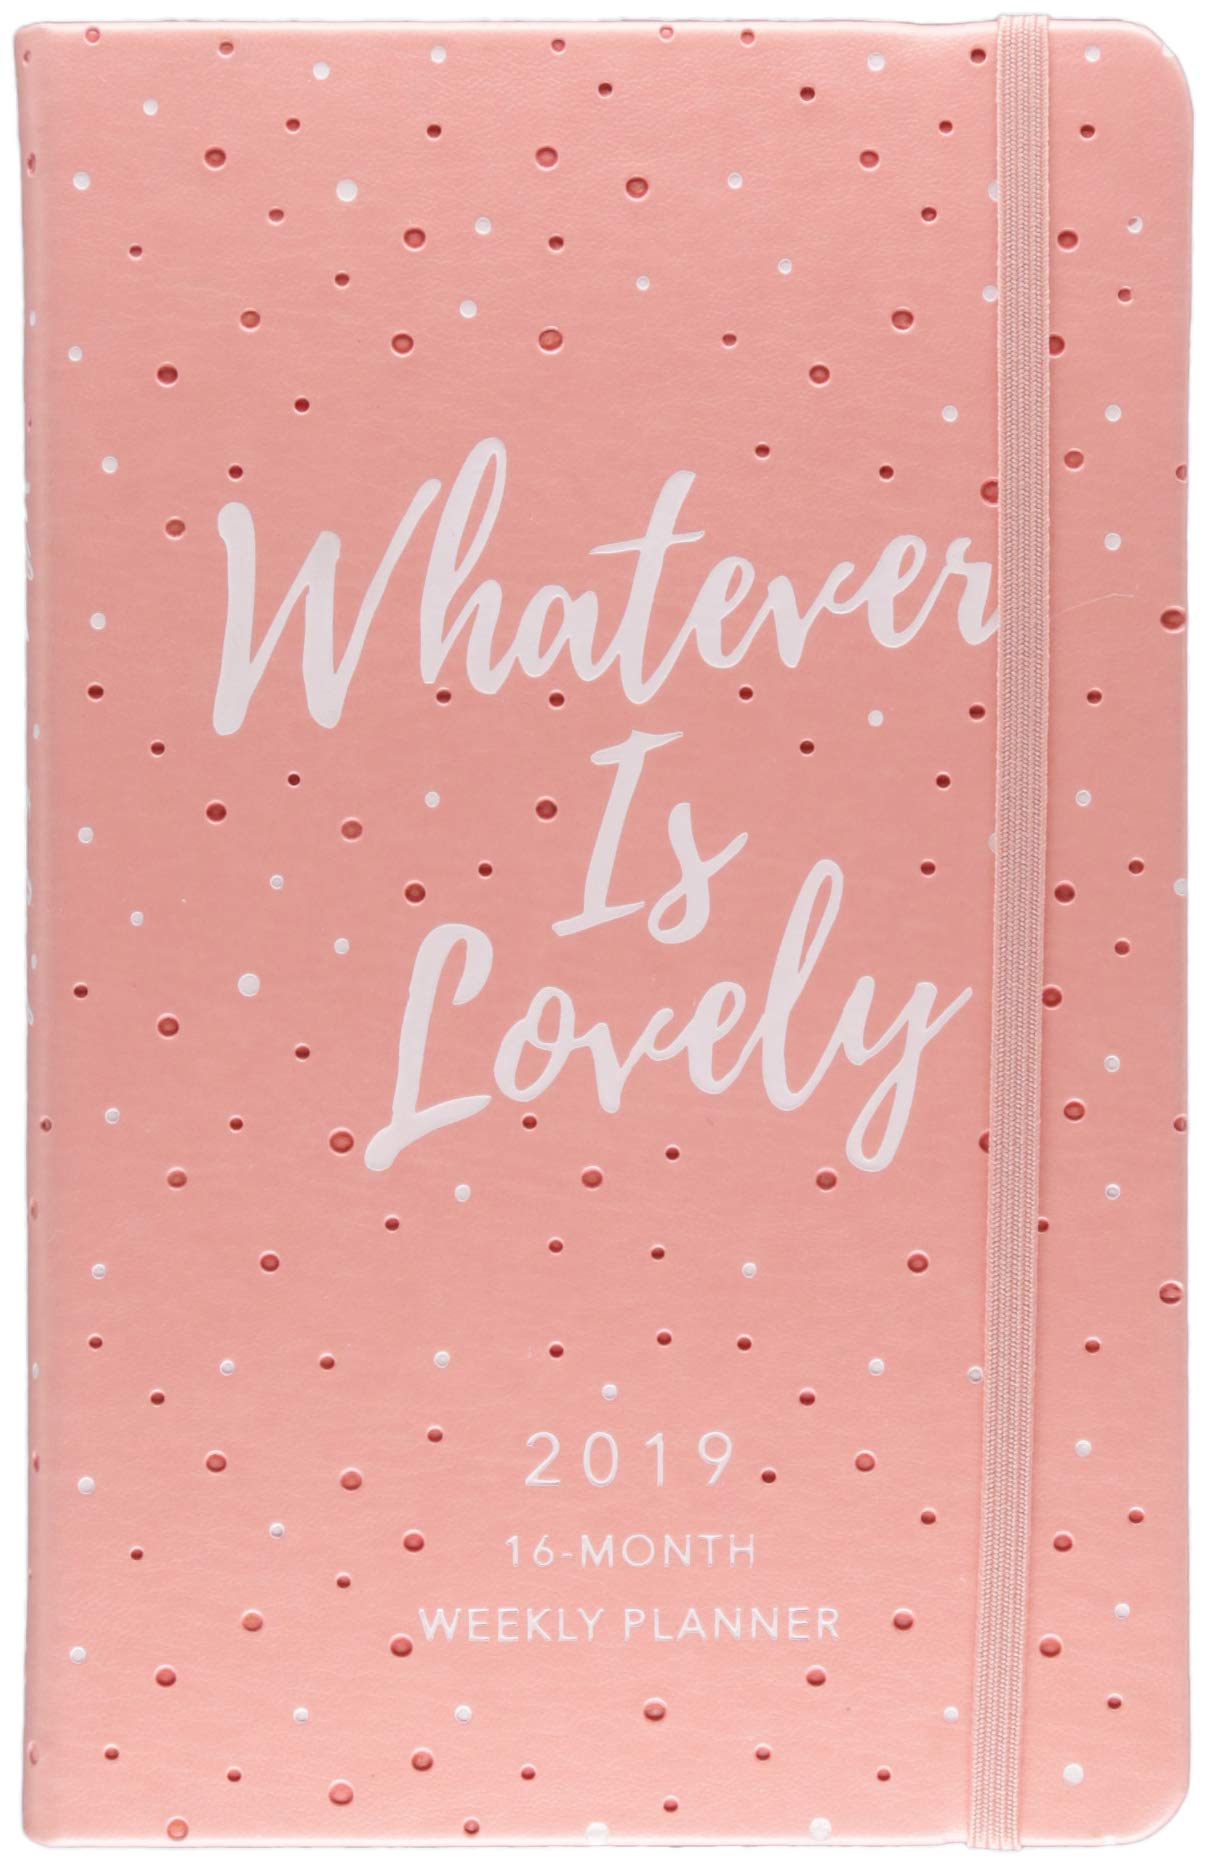 Whatever Is Lovely 2019 Planner: 16-month Weekly Planner PDF